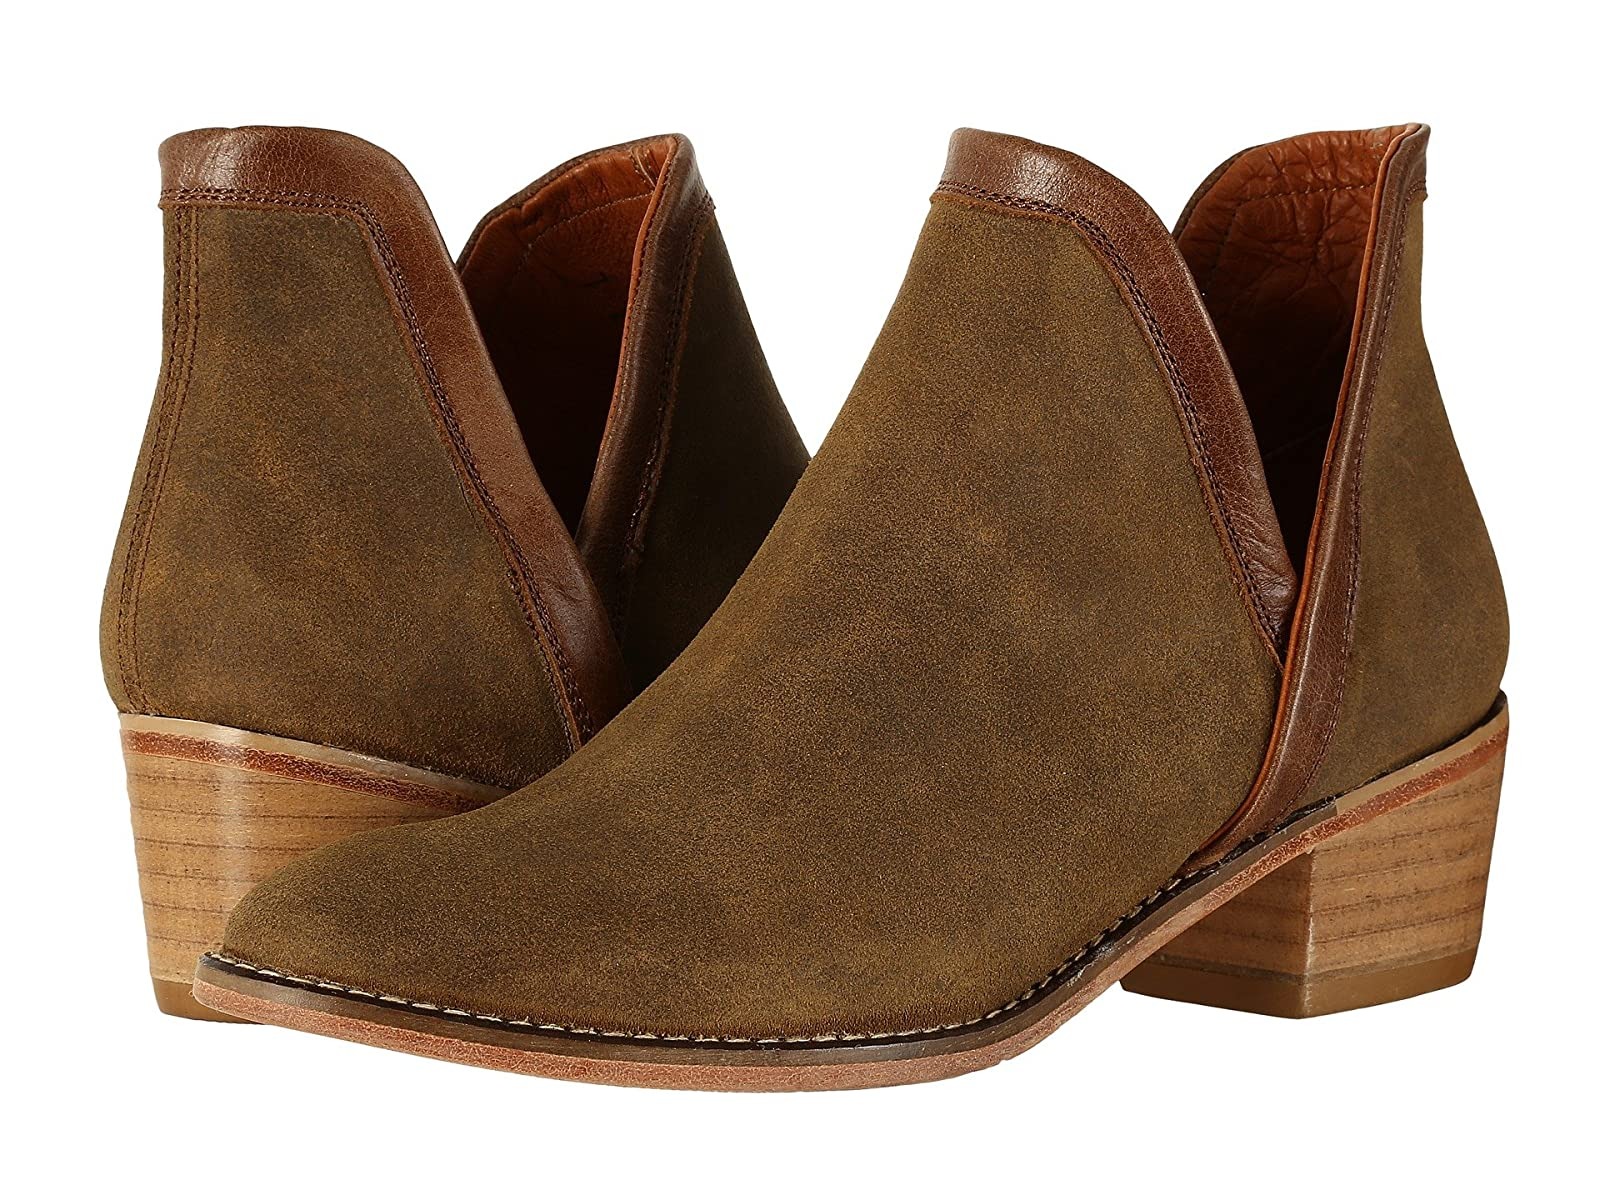 Wolverine Delaney BootieCheap and distinctive eye-catching shoes